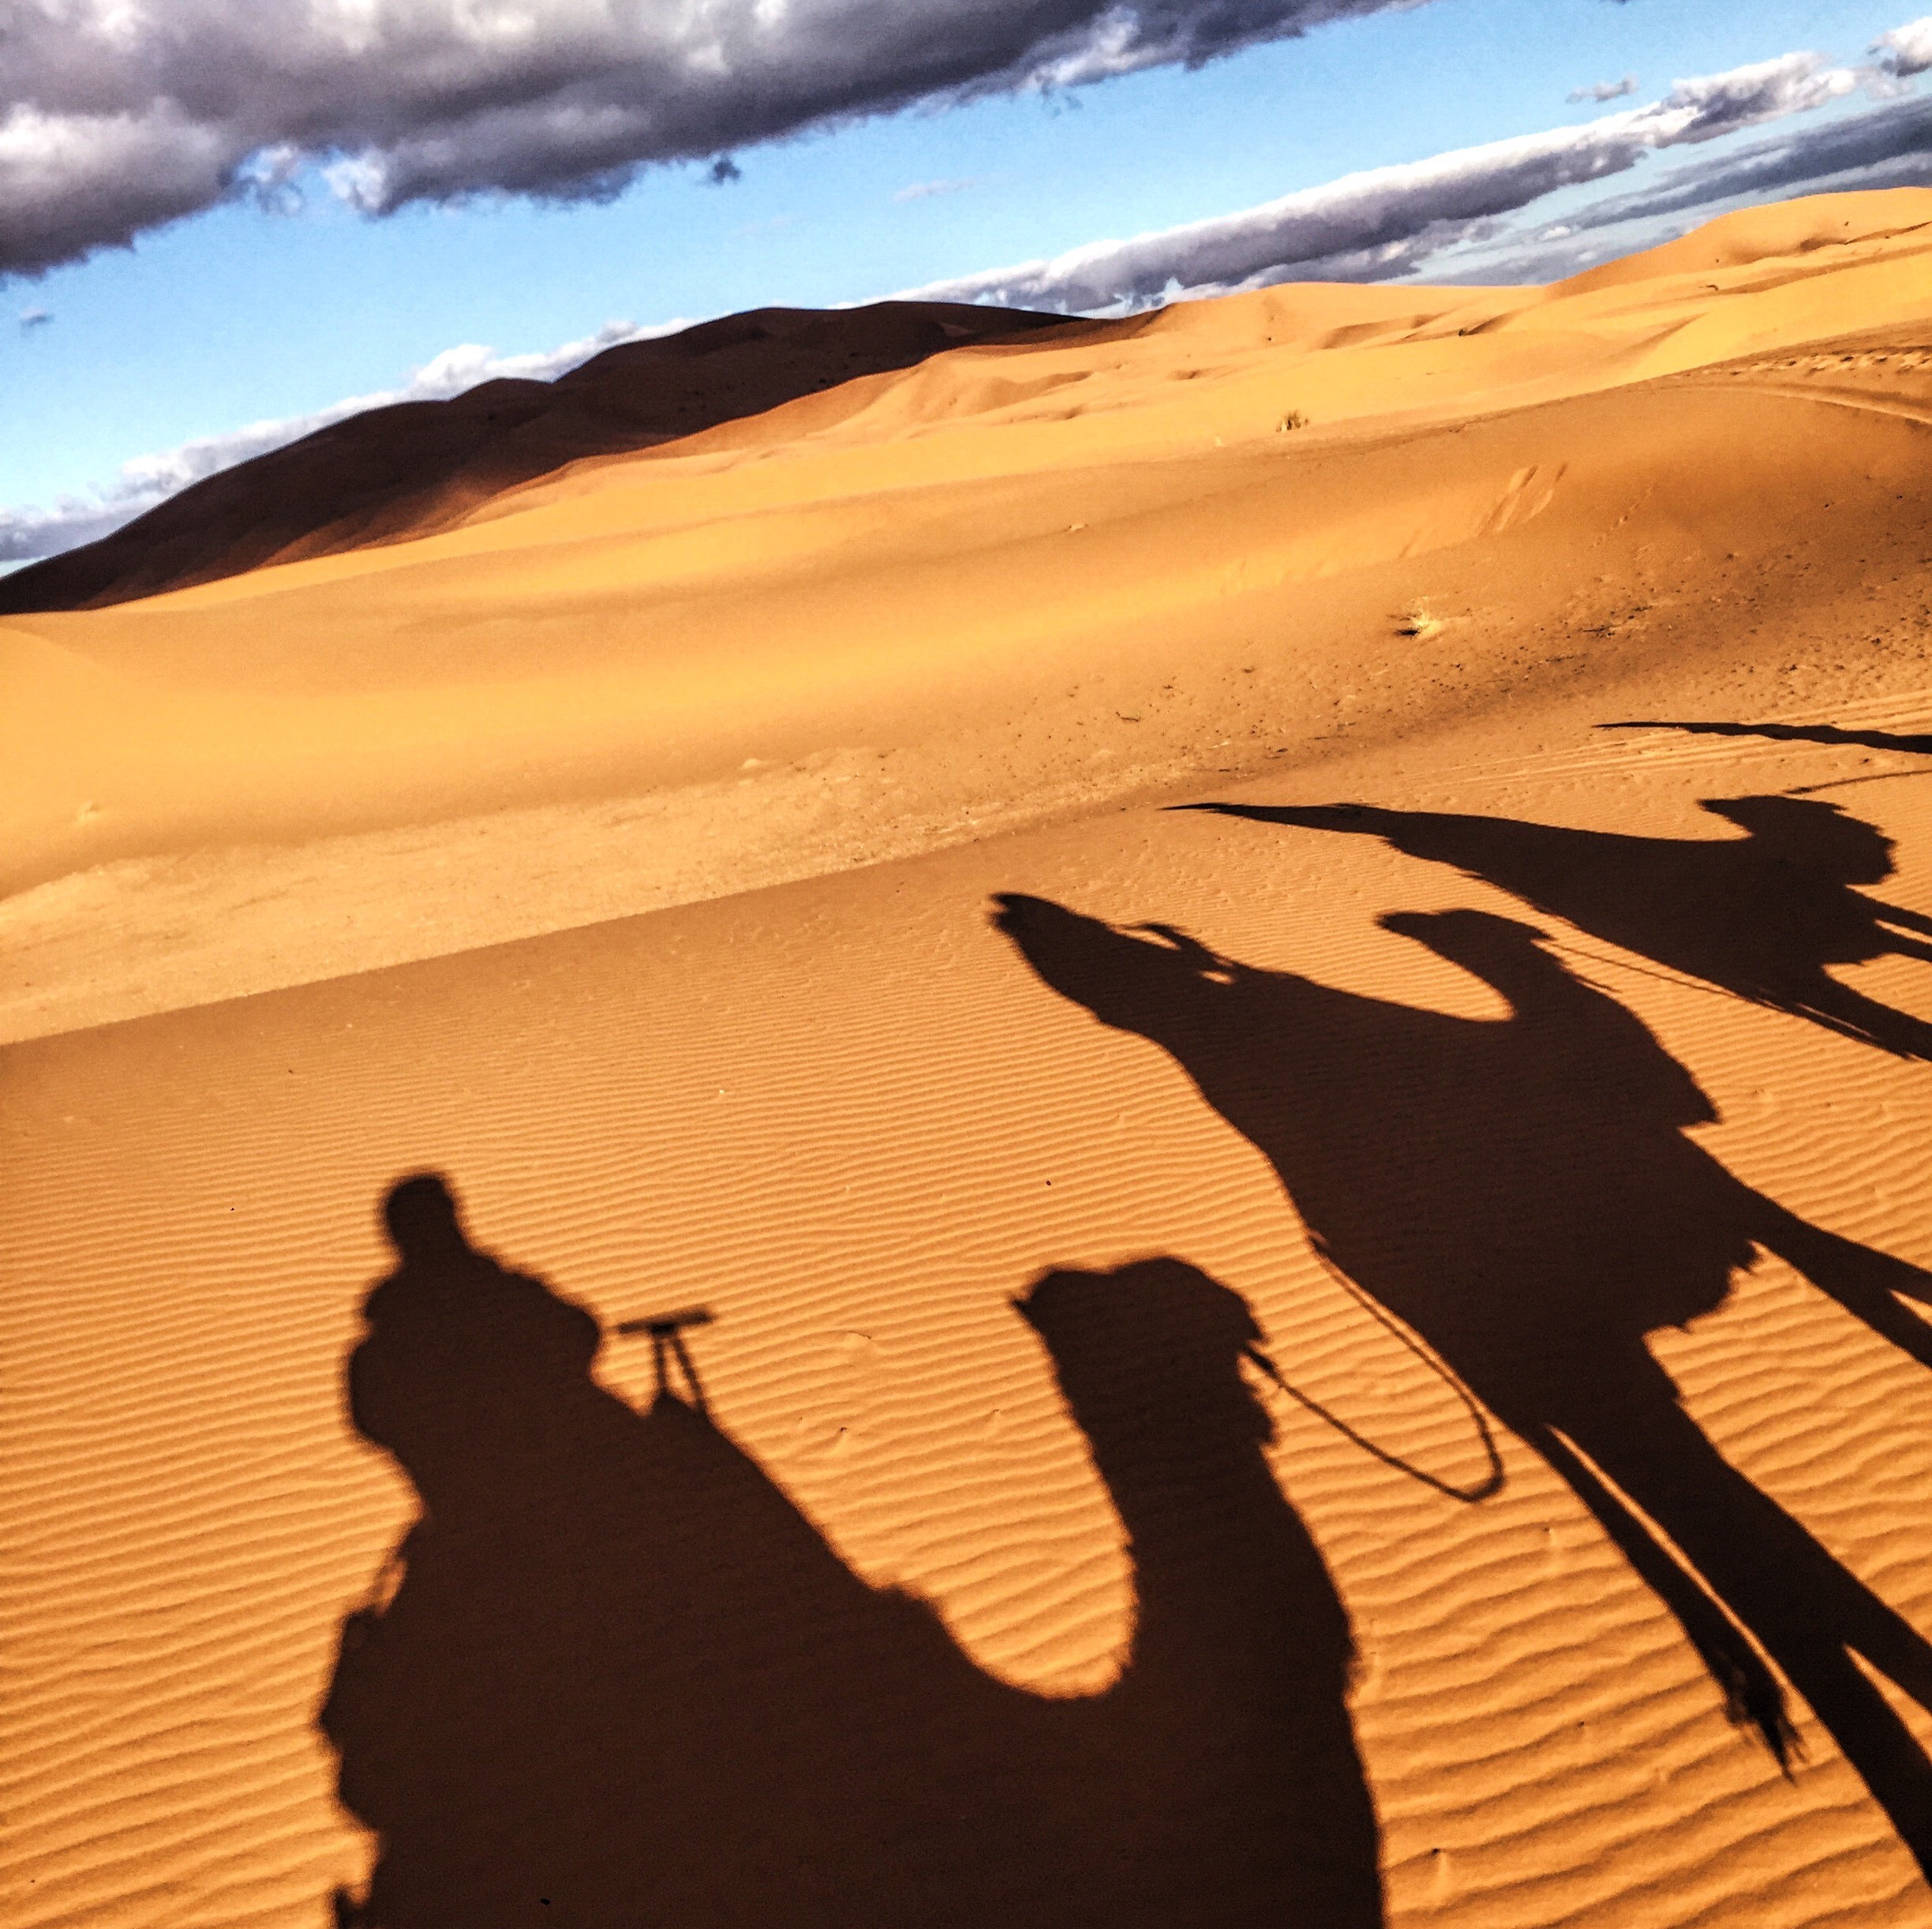 Camel-riding in the Sahara desert. Camels are still sometimes raised by nomadic people but are mostly used for tourists.